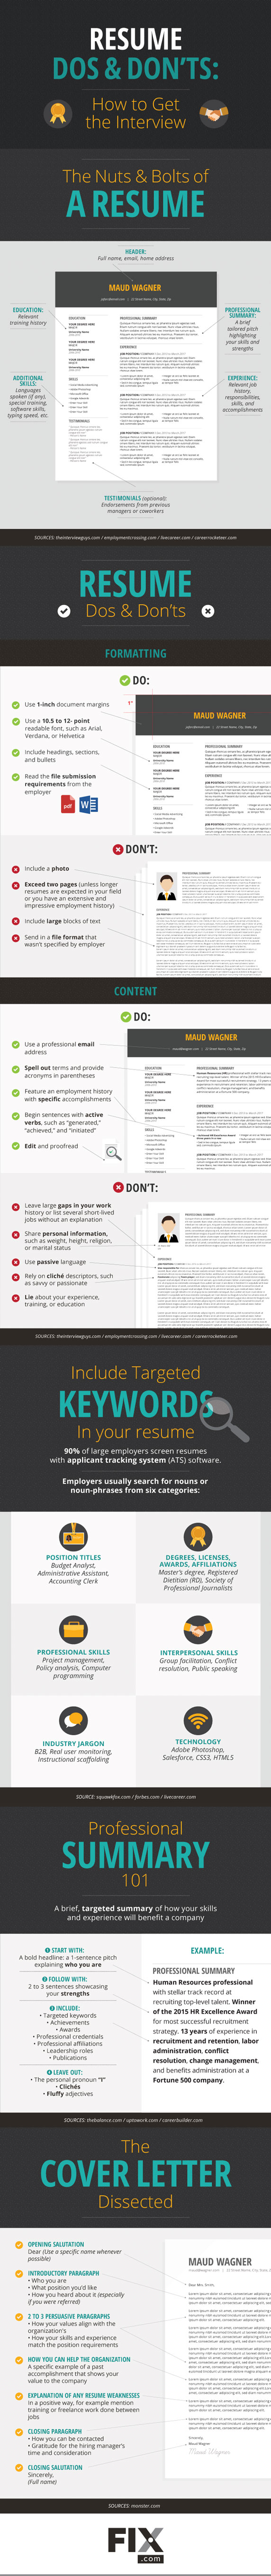 Resume Dos & Don\'t Infographic | Cool Infographics | Pinterest